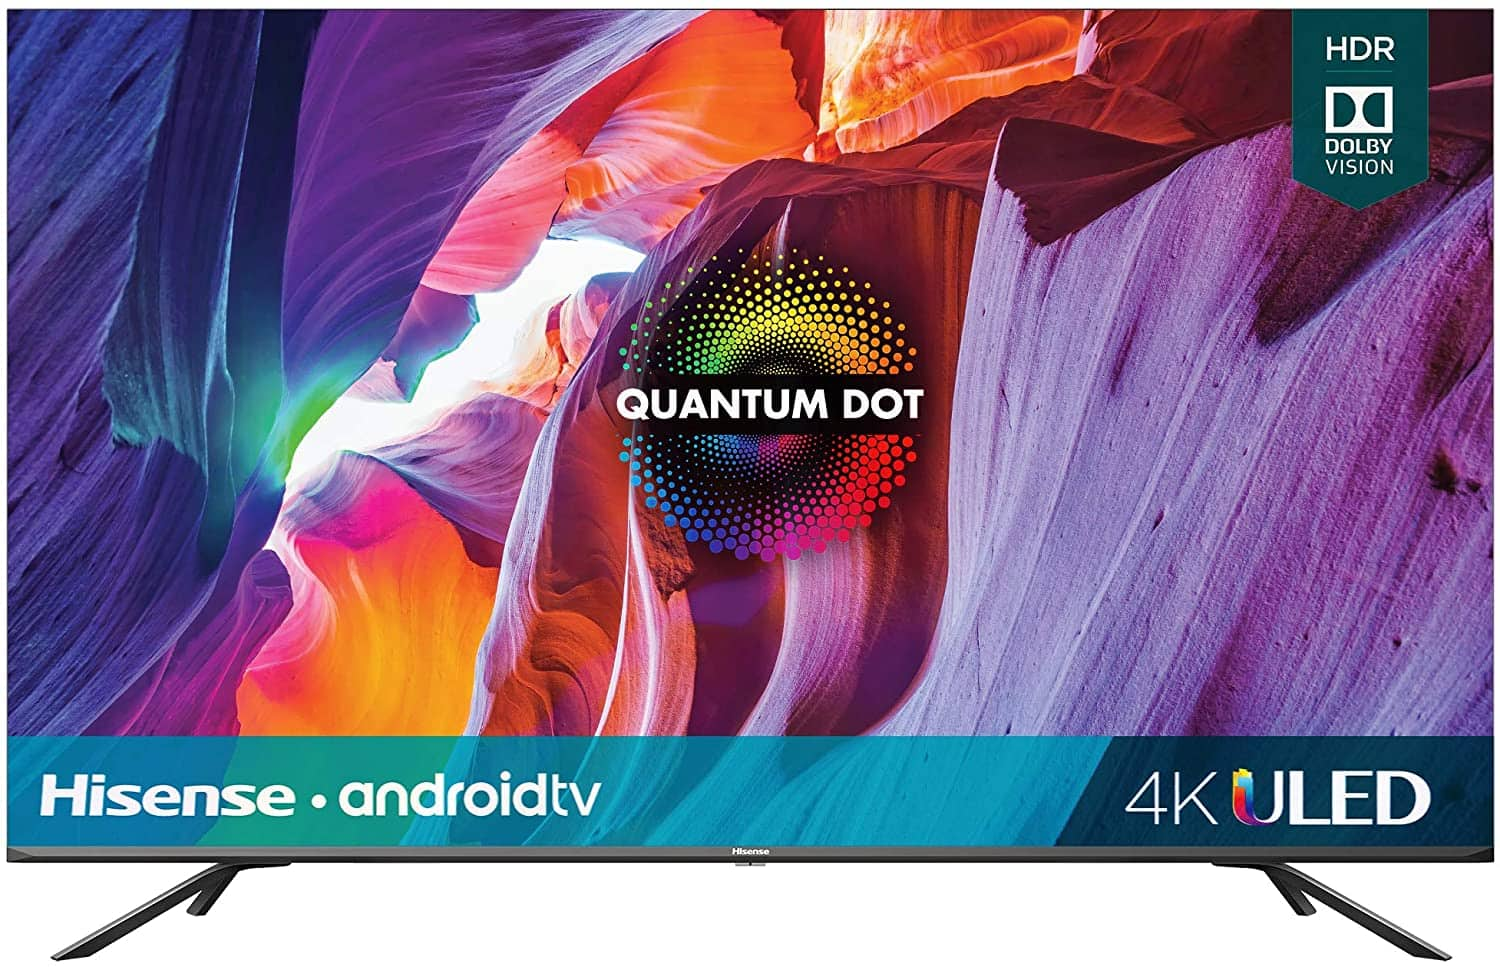 Hisense 50-Inch Class H8 Quantum Series Android 4K ULED Smart TV with Voice Remote (50H8G, 2020 Model)~$349.99 @ Amazon~Free Prime Shipping!